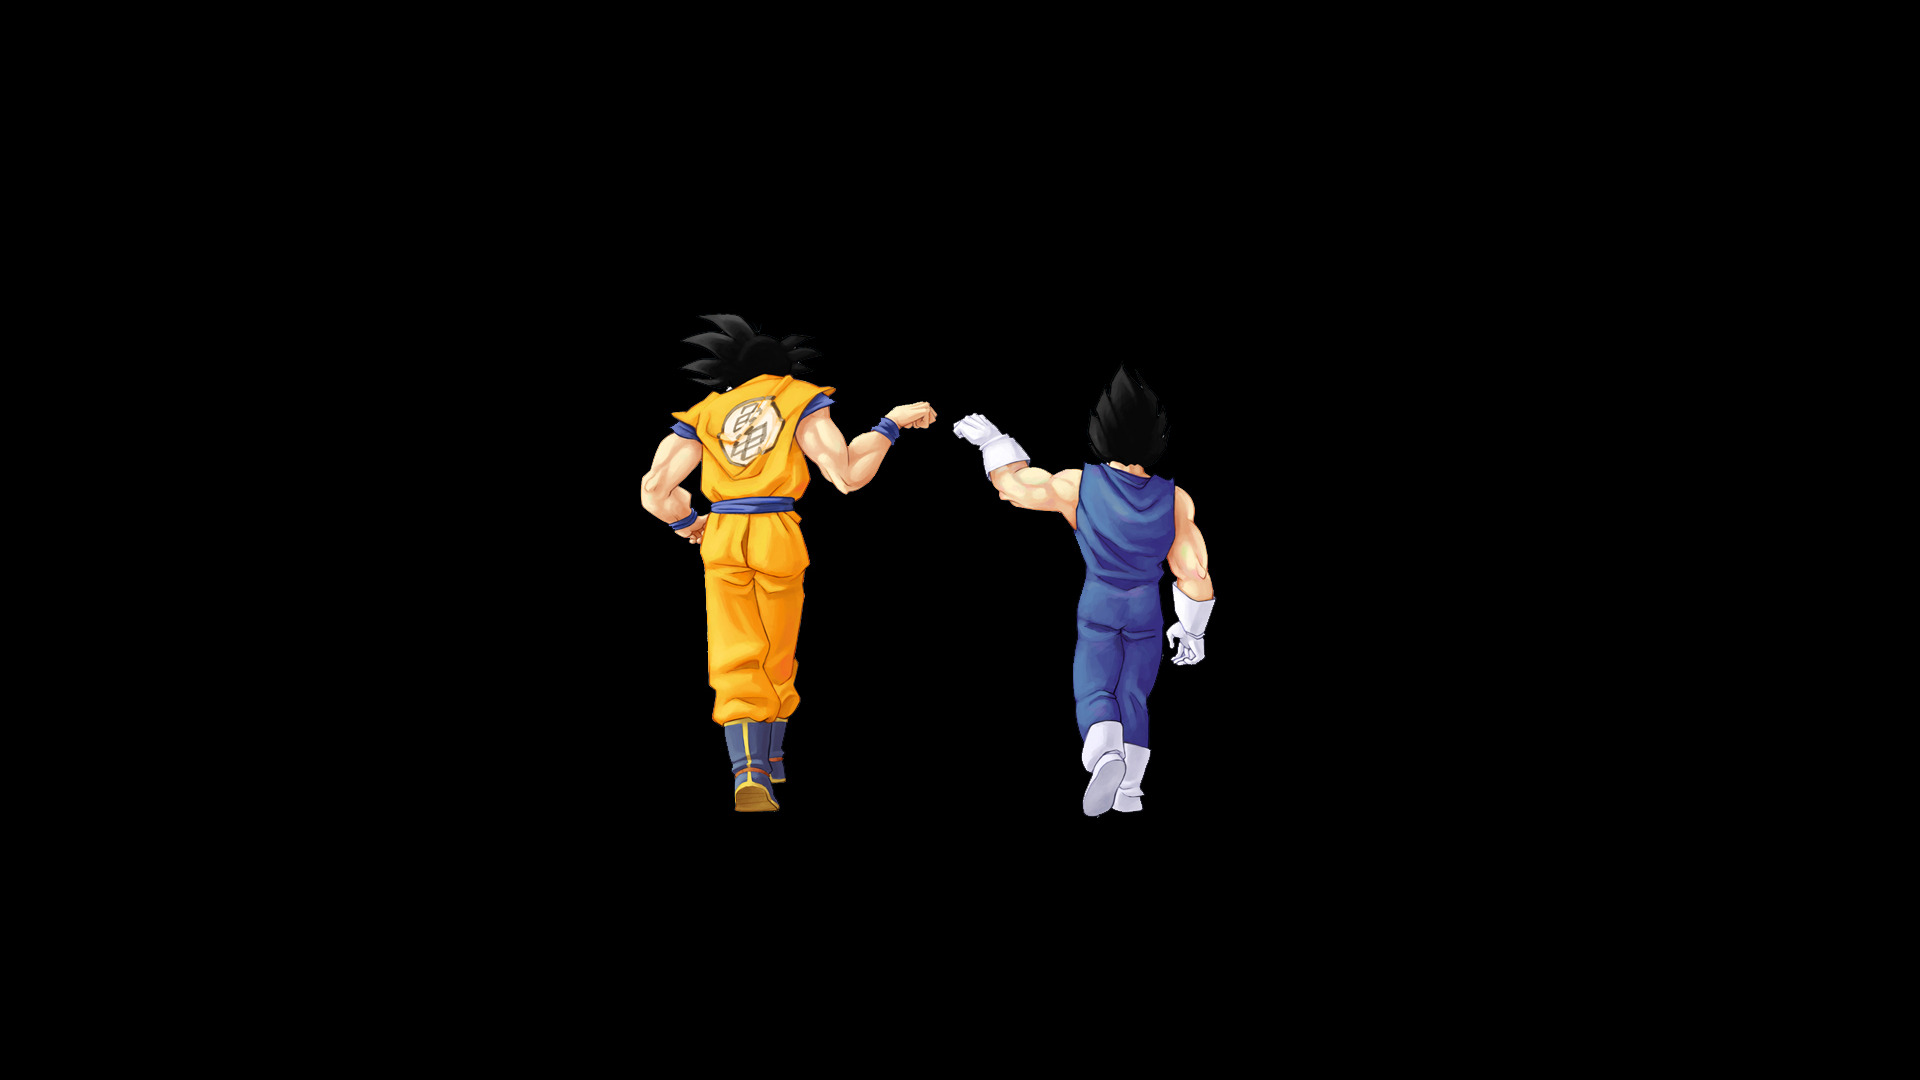 Wallpaper Dragon Ball Z Hd Gratuit A Telecharger Sur Ngn Mag